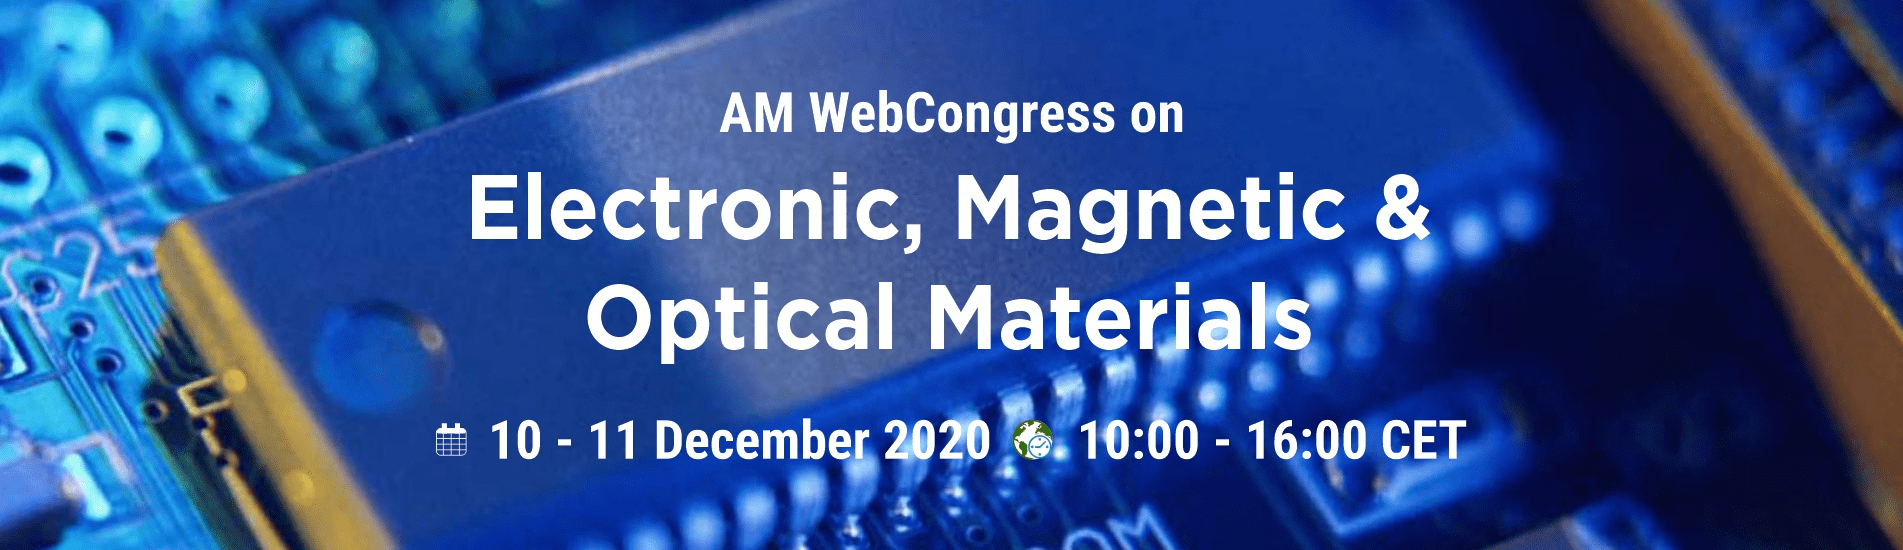 WebCongress on Electronic, Magnetic, and Optical Materials | AMWeb | IAAM